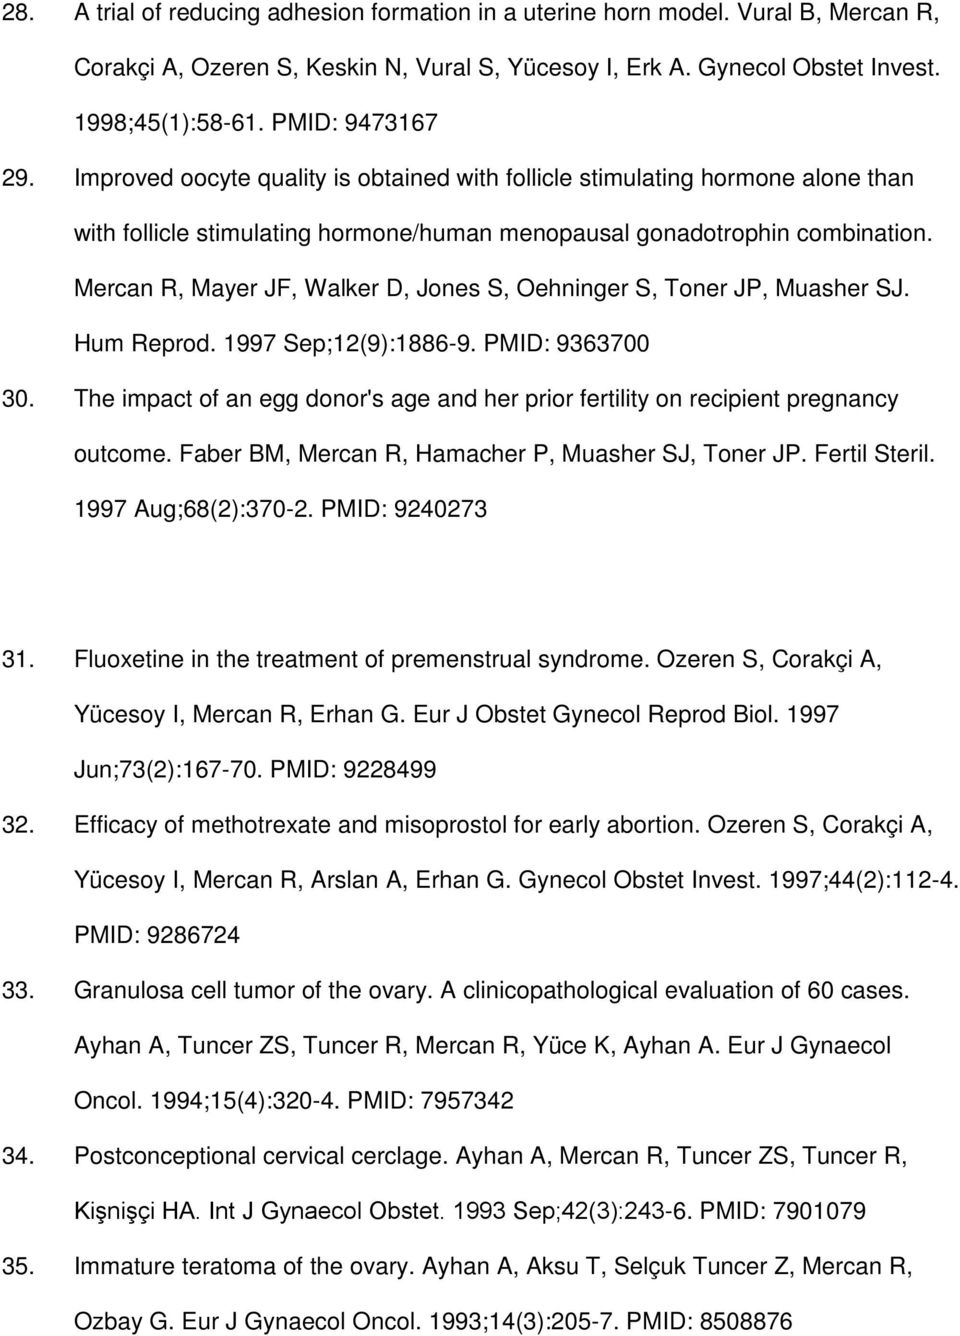 Mercan R, Mayer JF, Walker D, Jones S, Oehninger S, Toner JP, Muasher SJ. Hum Reprod. 1997 Sep;12(9):1886-9. PMID: 9363700 30.